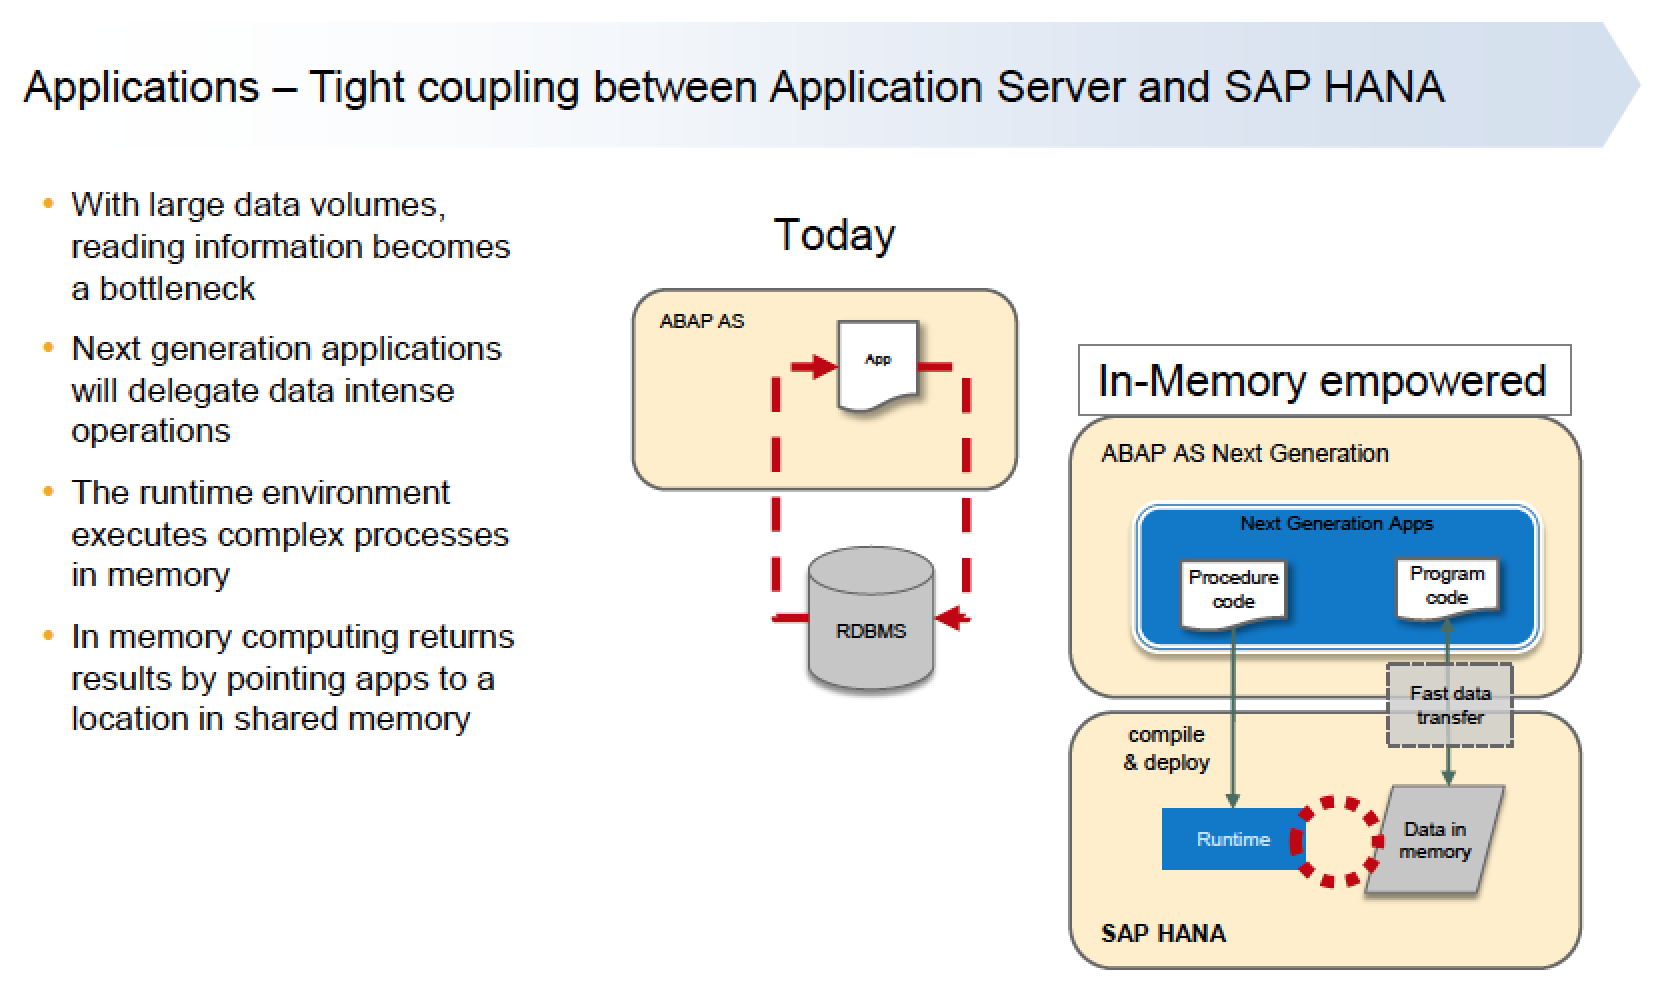 SAP HANA Key